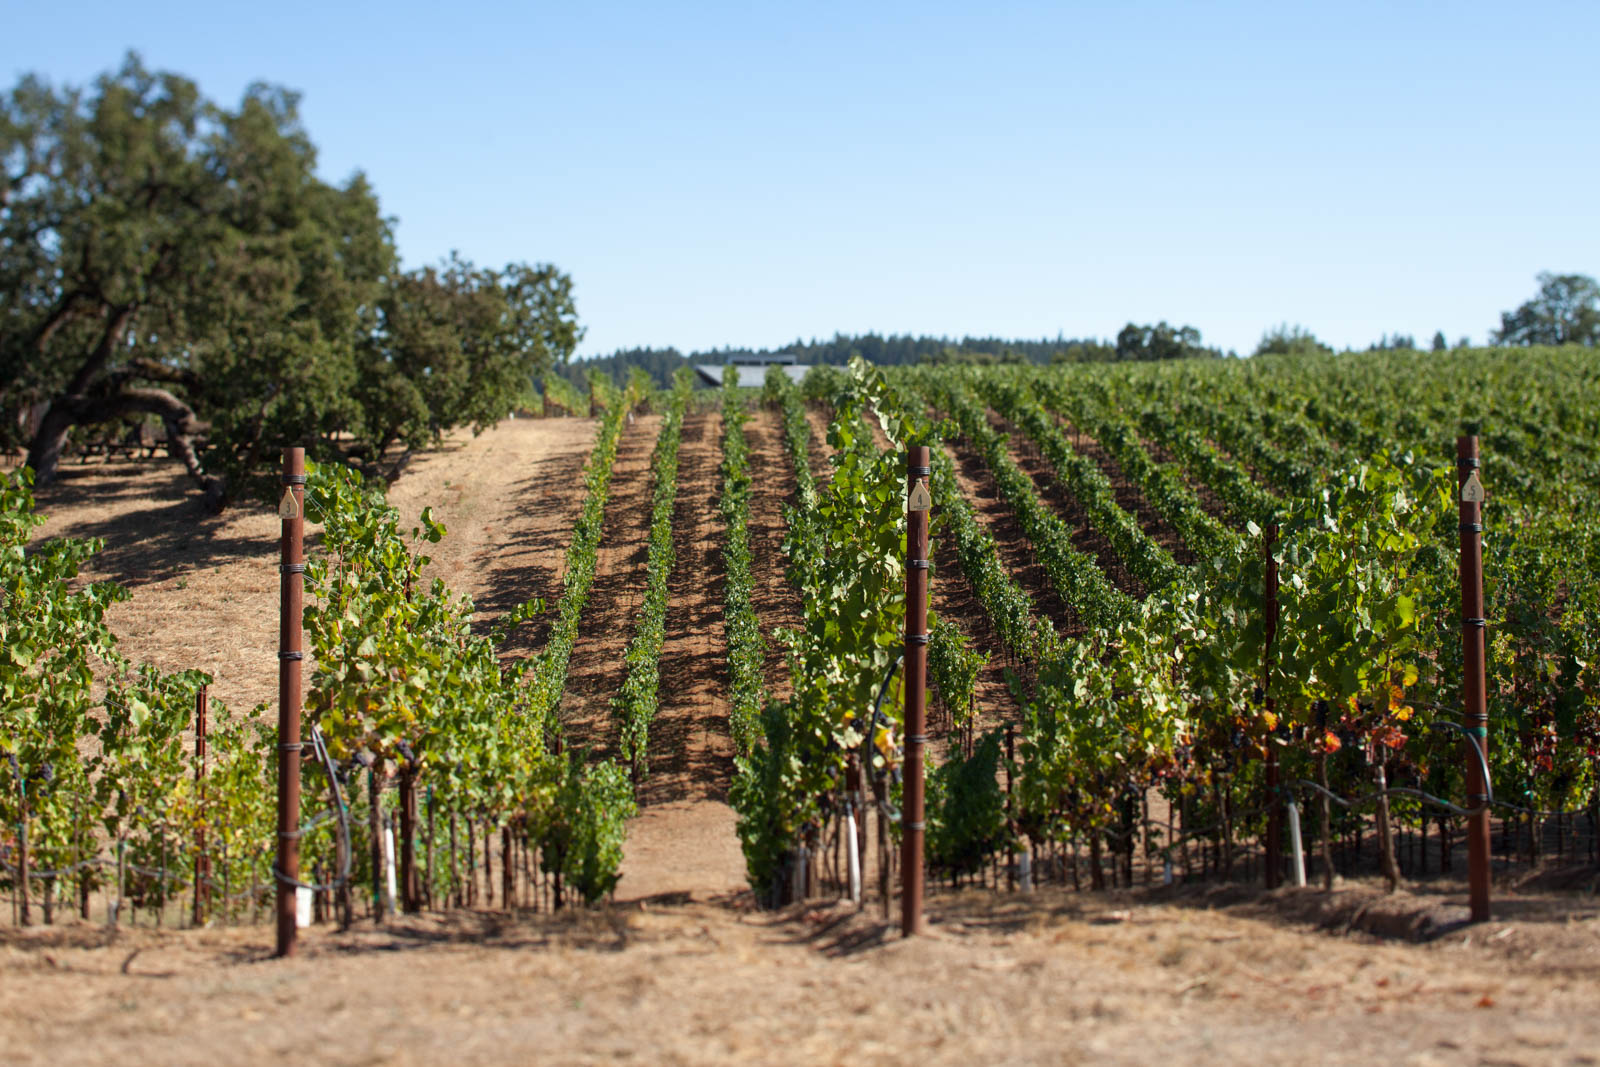 The Seven Stories Vineyard at Arista Winery. ©Kevin Day / Opening a Bottle